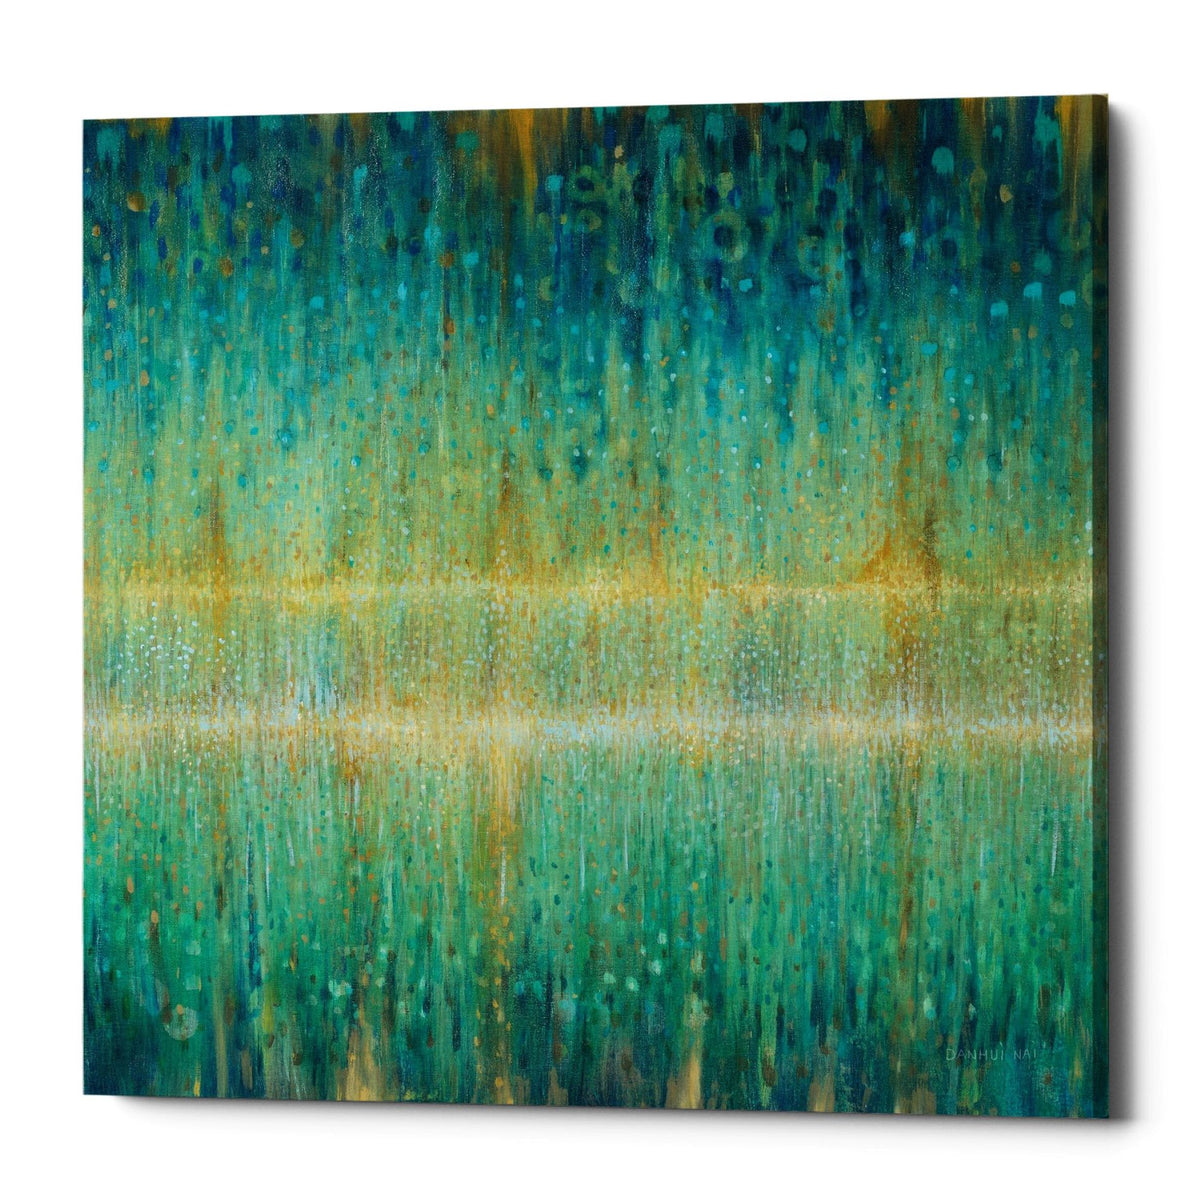 "Epic Graffiti ""Rain Abstract I"" by Danhui Nai, Giclee Canvas Wall Art"